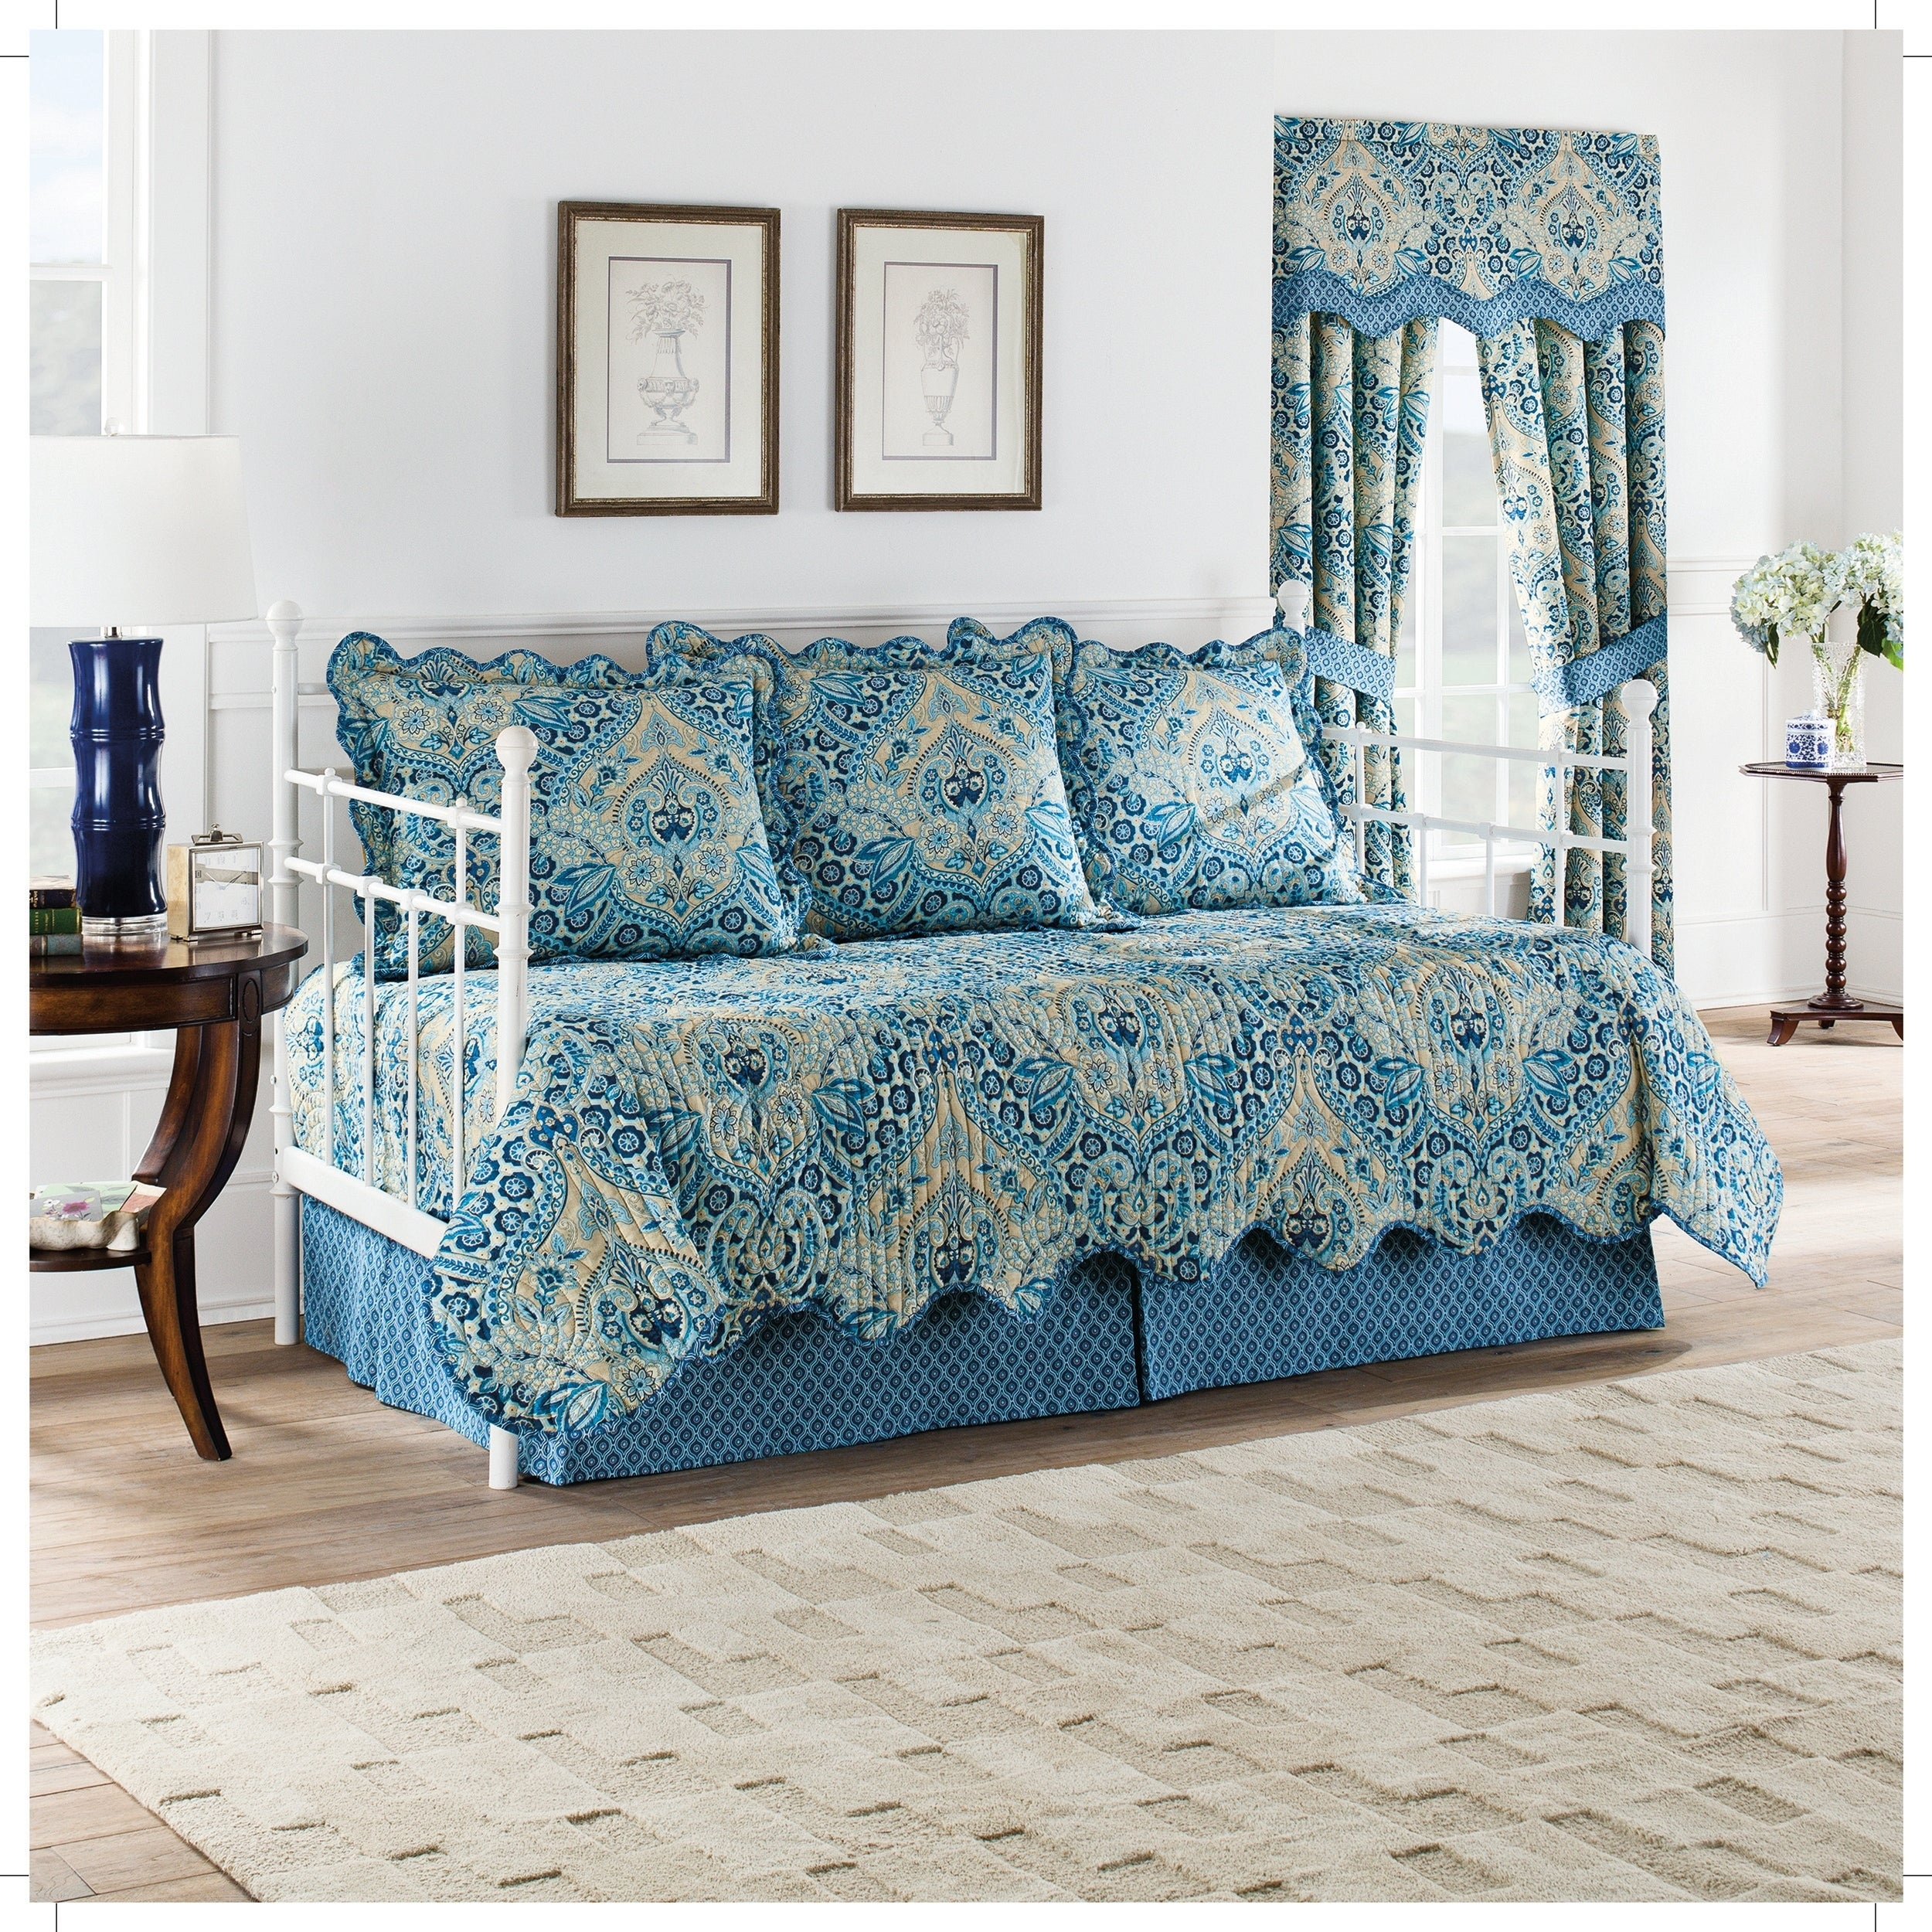 Waverly Moonlit Shadows Reversible 5 Piece Quilt Daybed C...